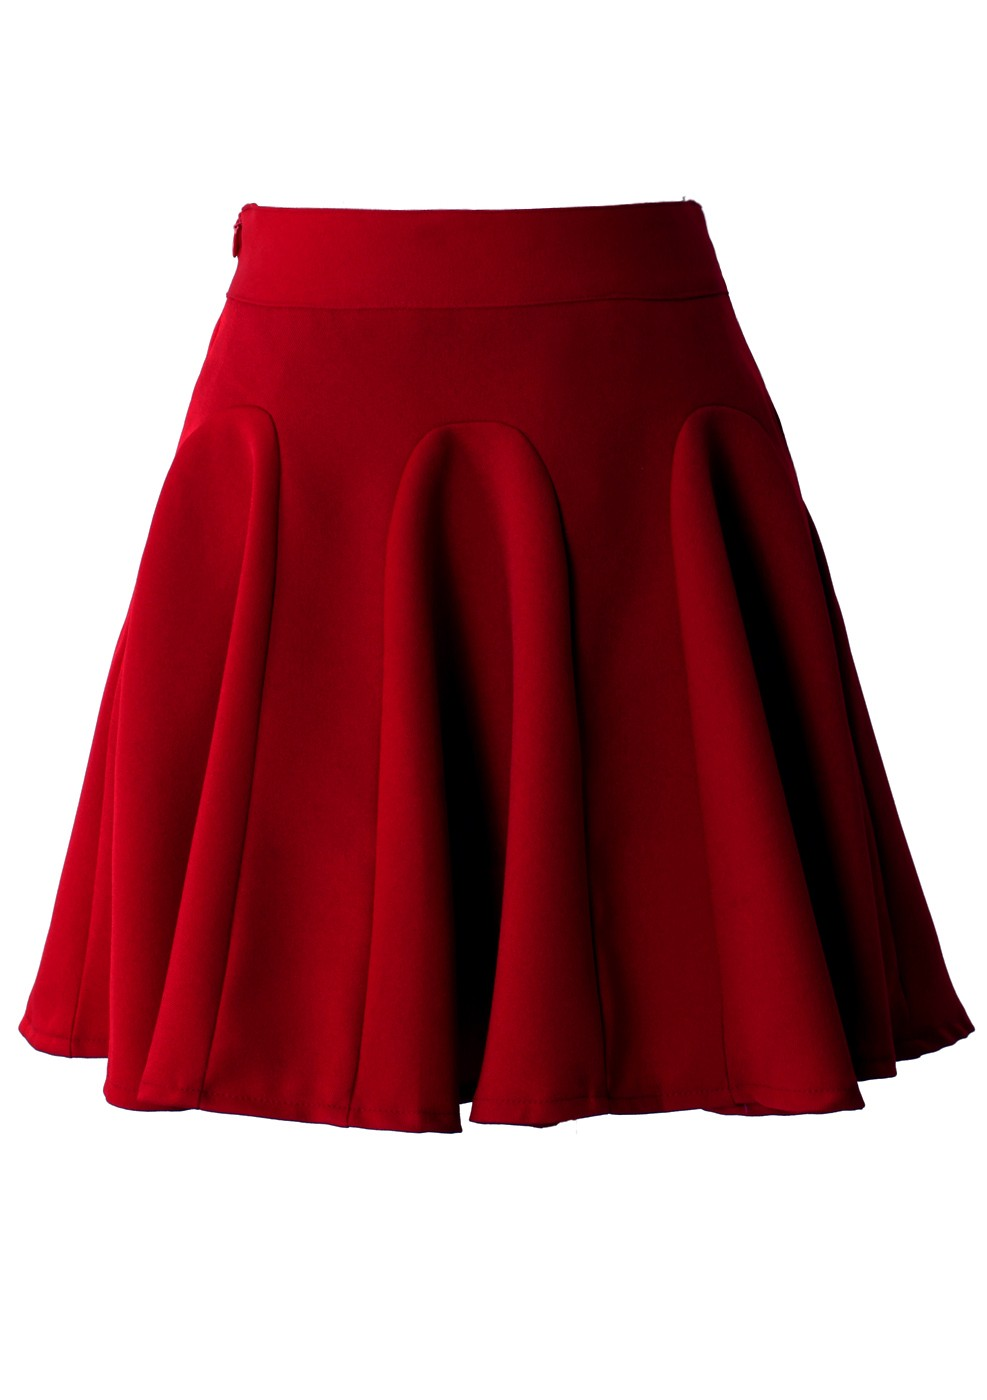 Red High Waist Skater Skirt Retro Indie And Unique Fashion